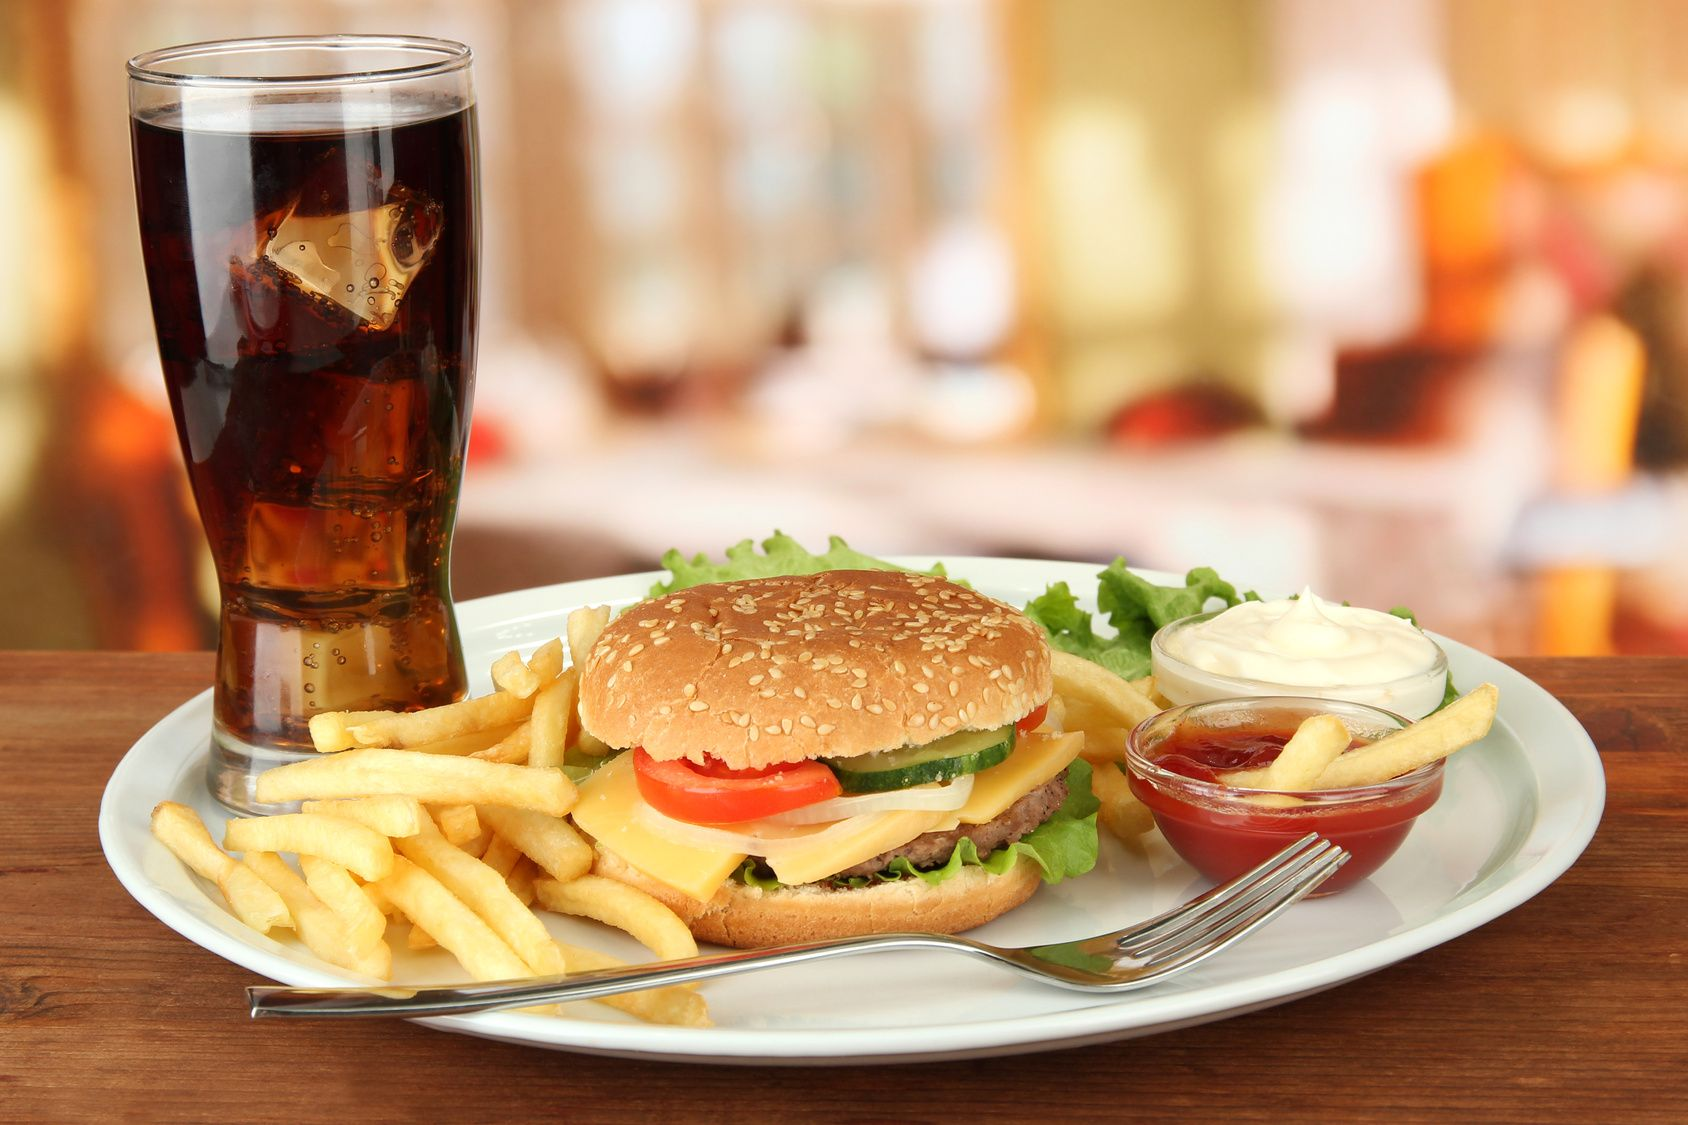 Did you know? Having hot food with cold drinks may damage ...